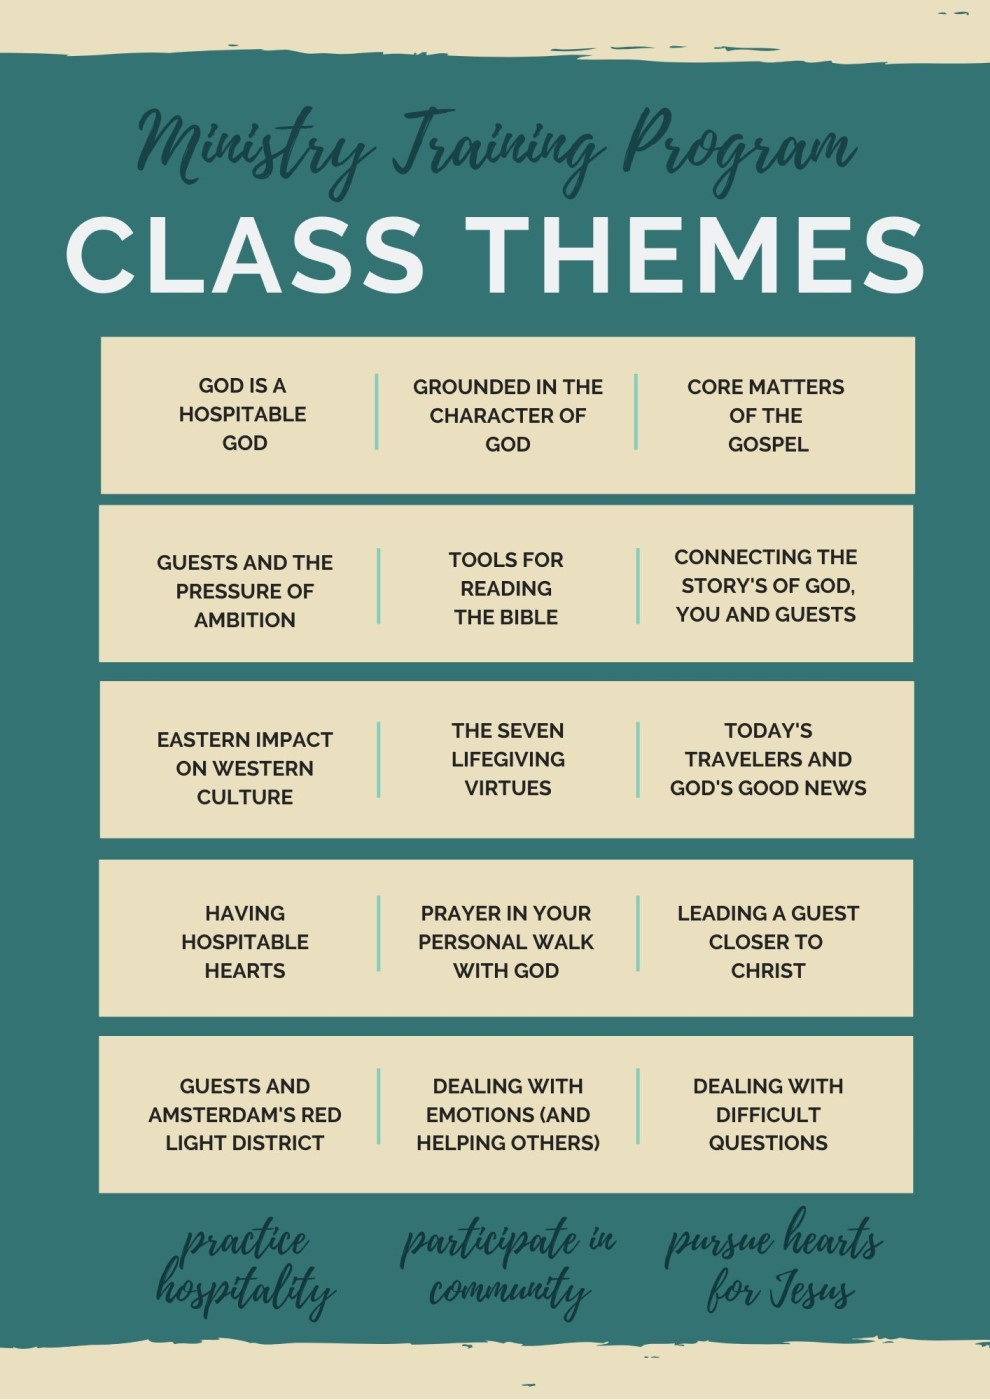 overview of themes in our missionary training program